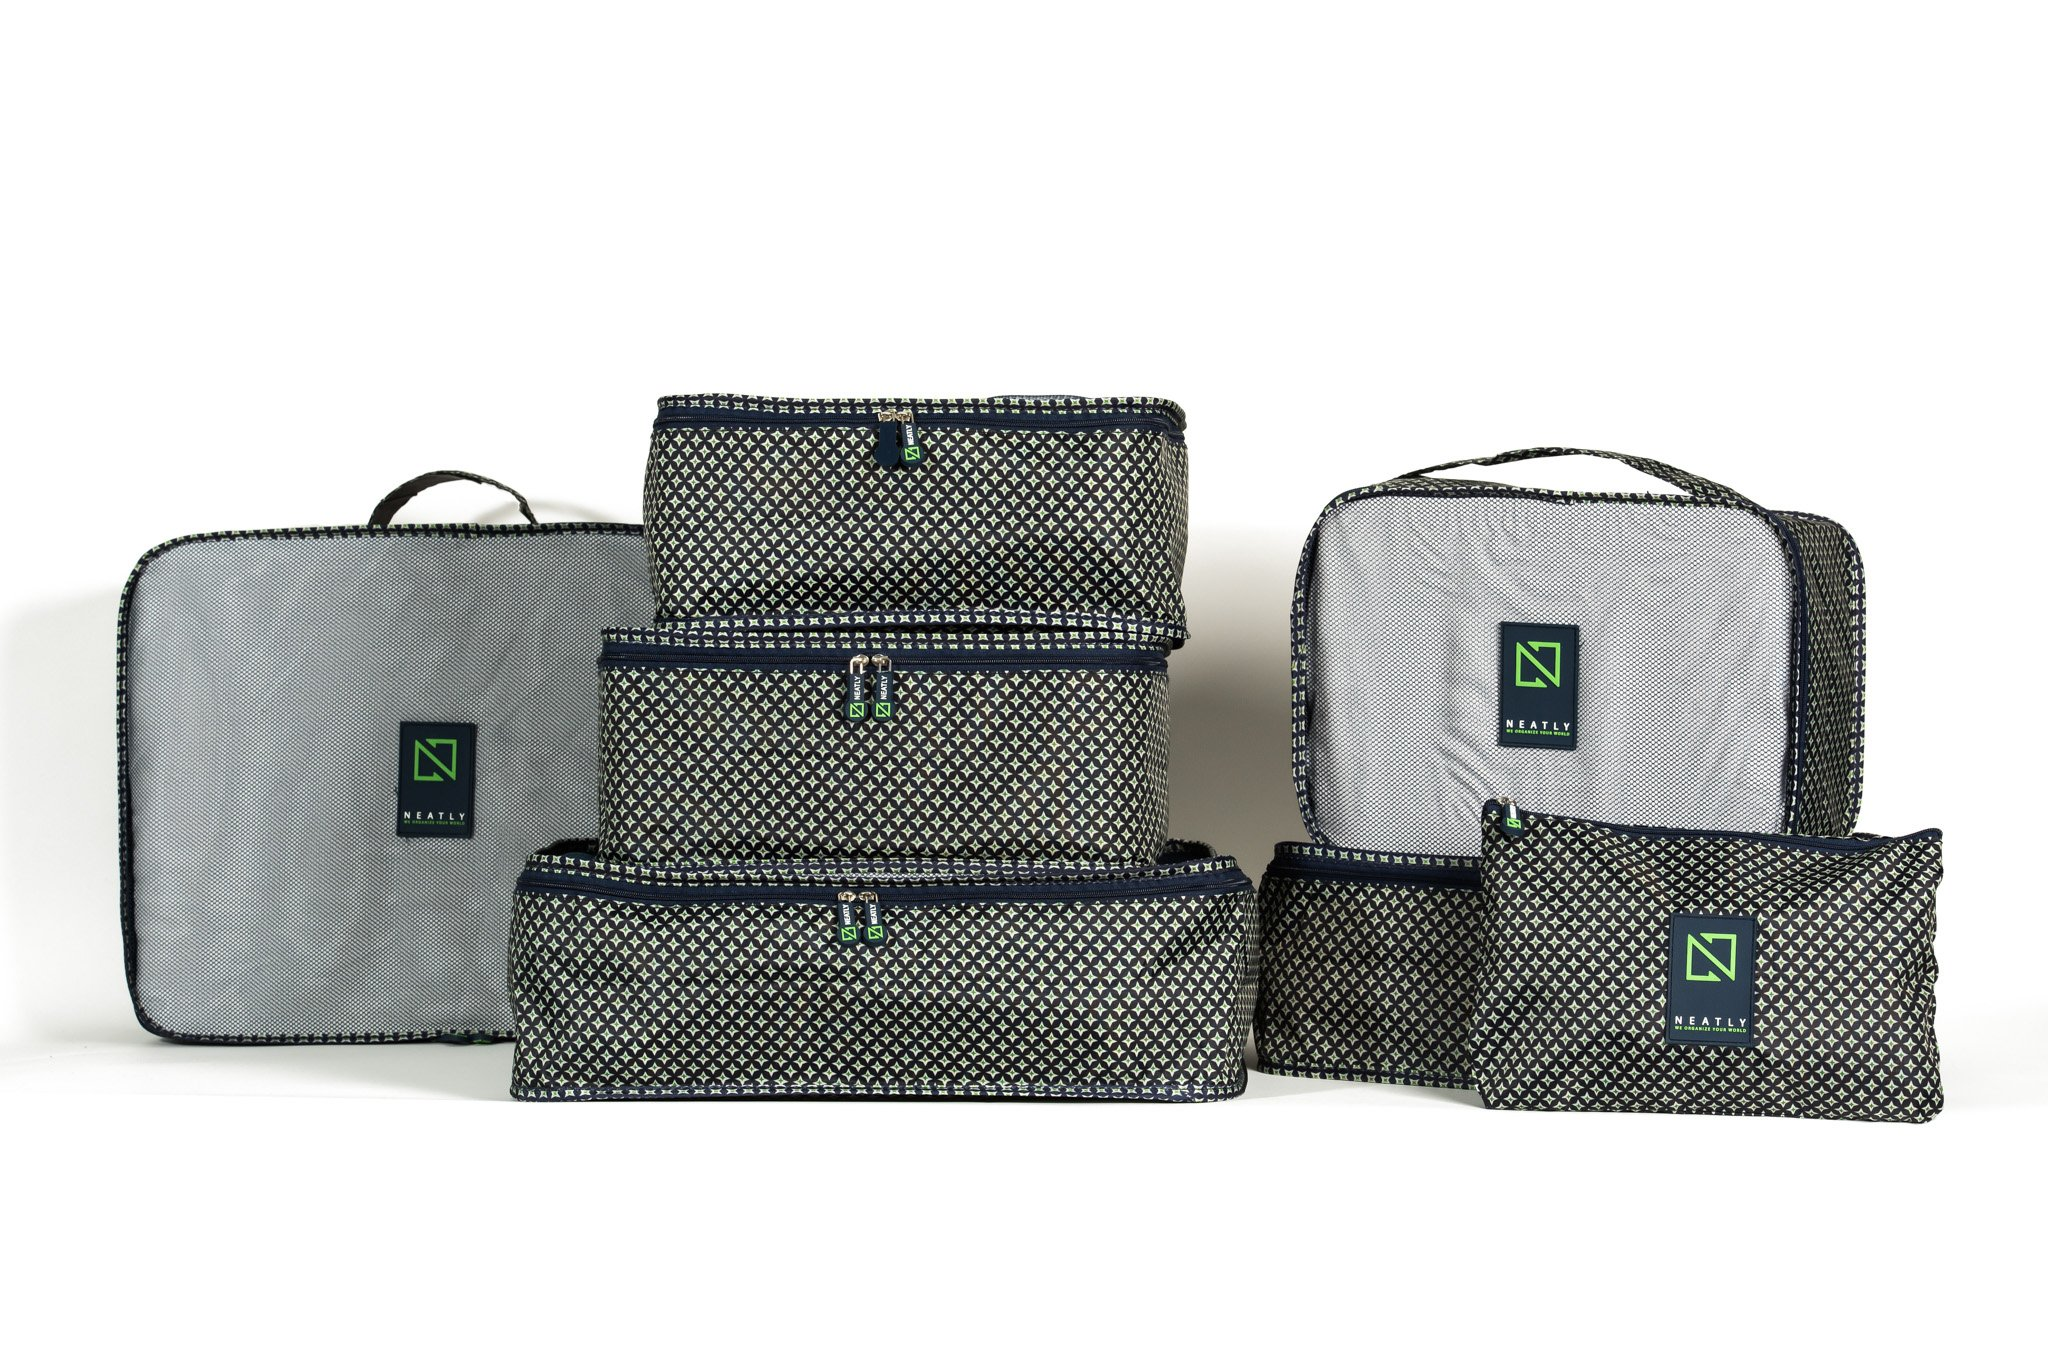 Neatly Travel Packing Cubes - 7 Piece Premium Luggage set